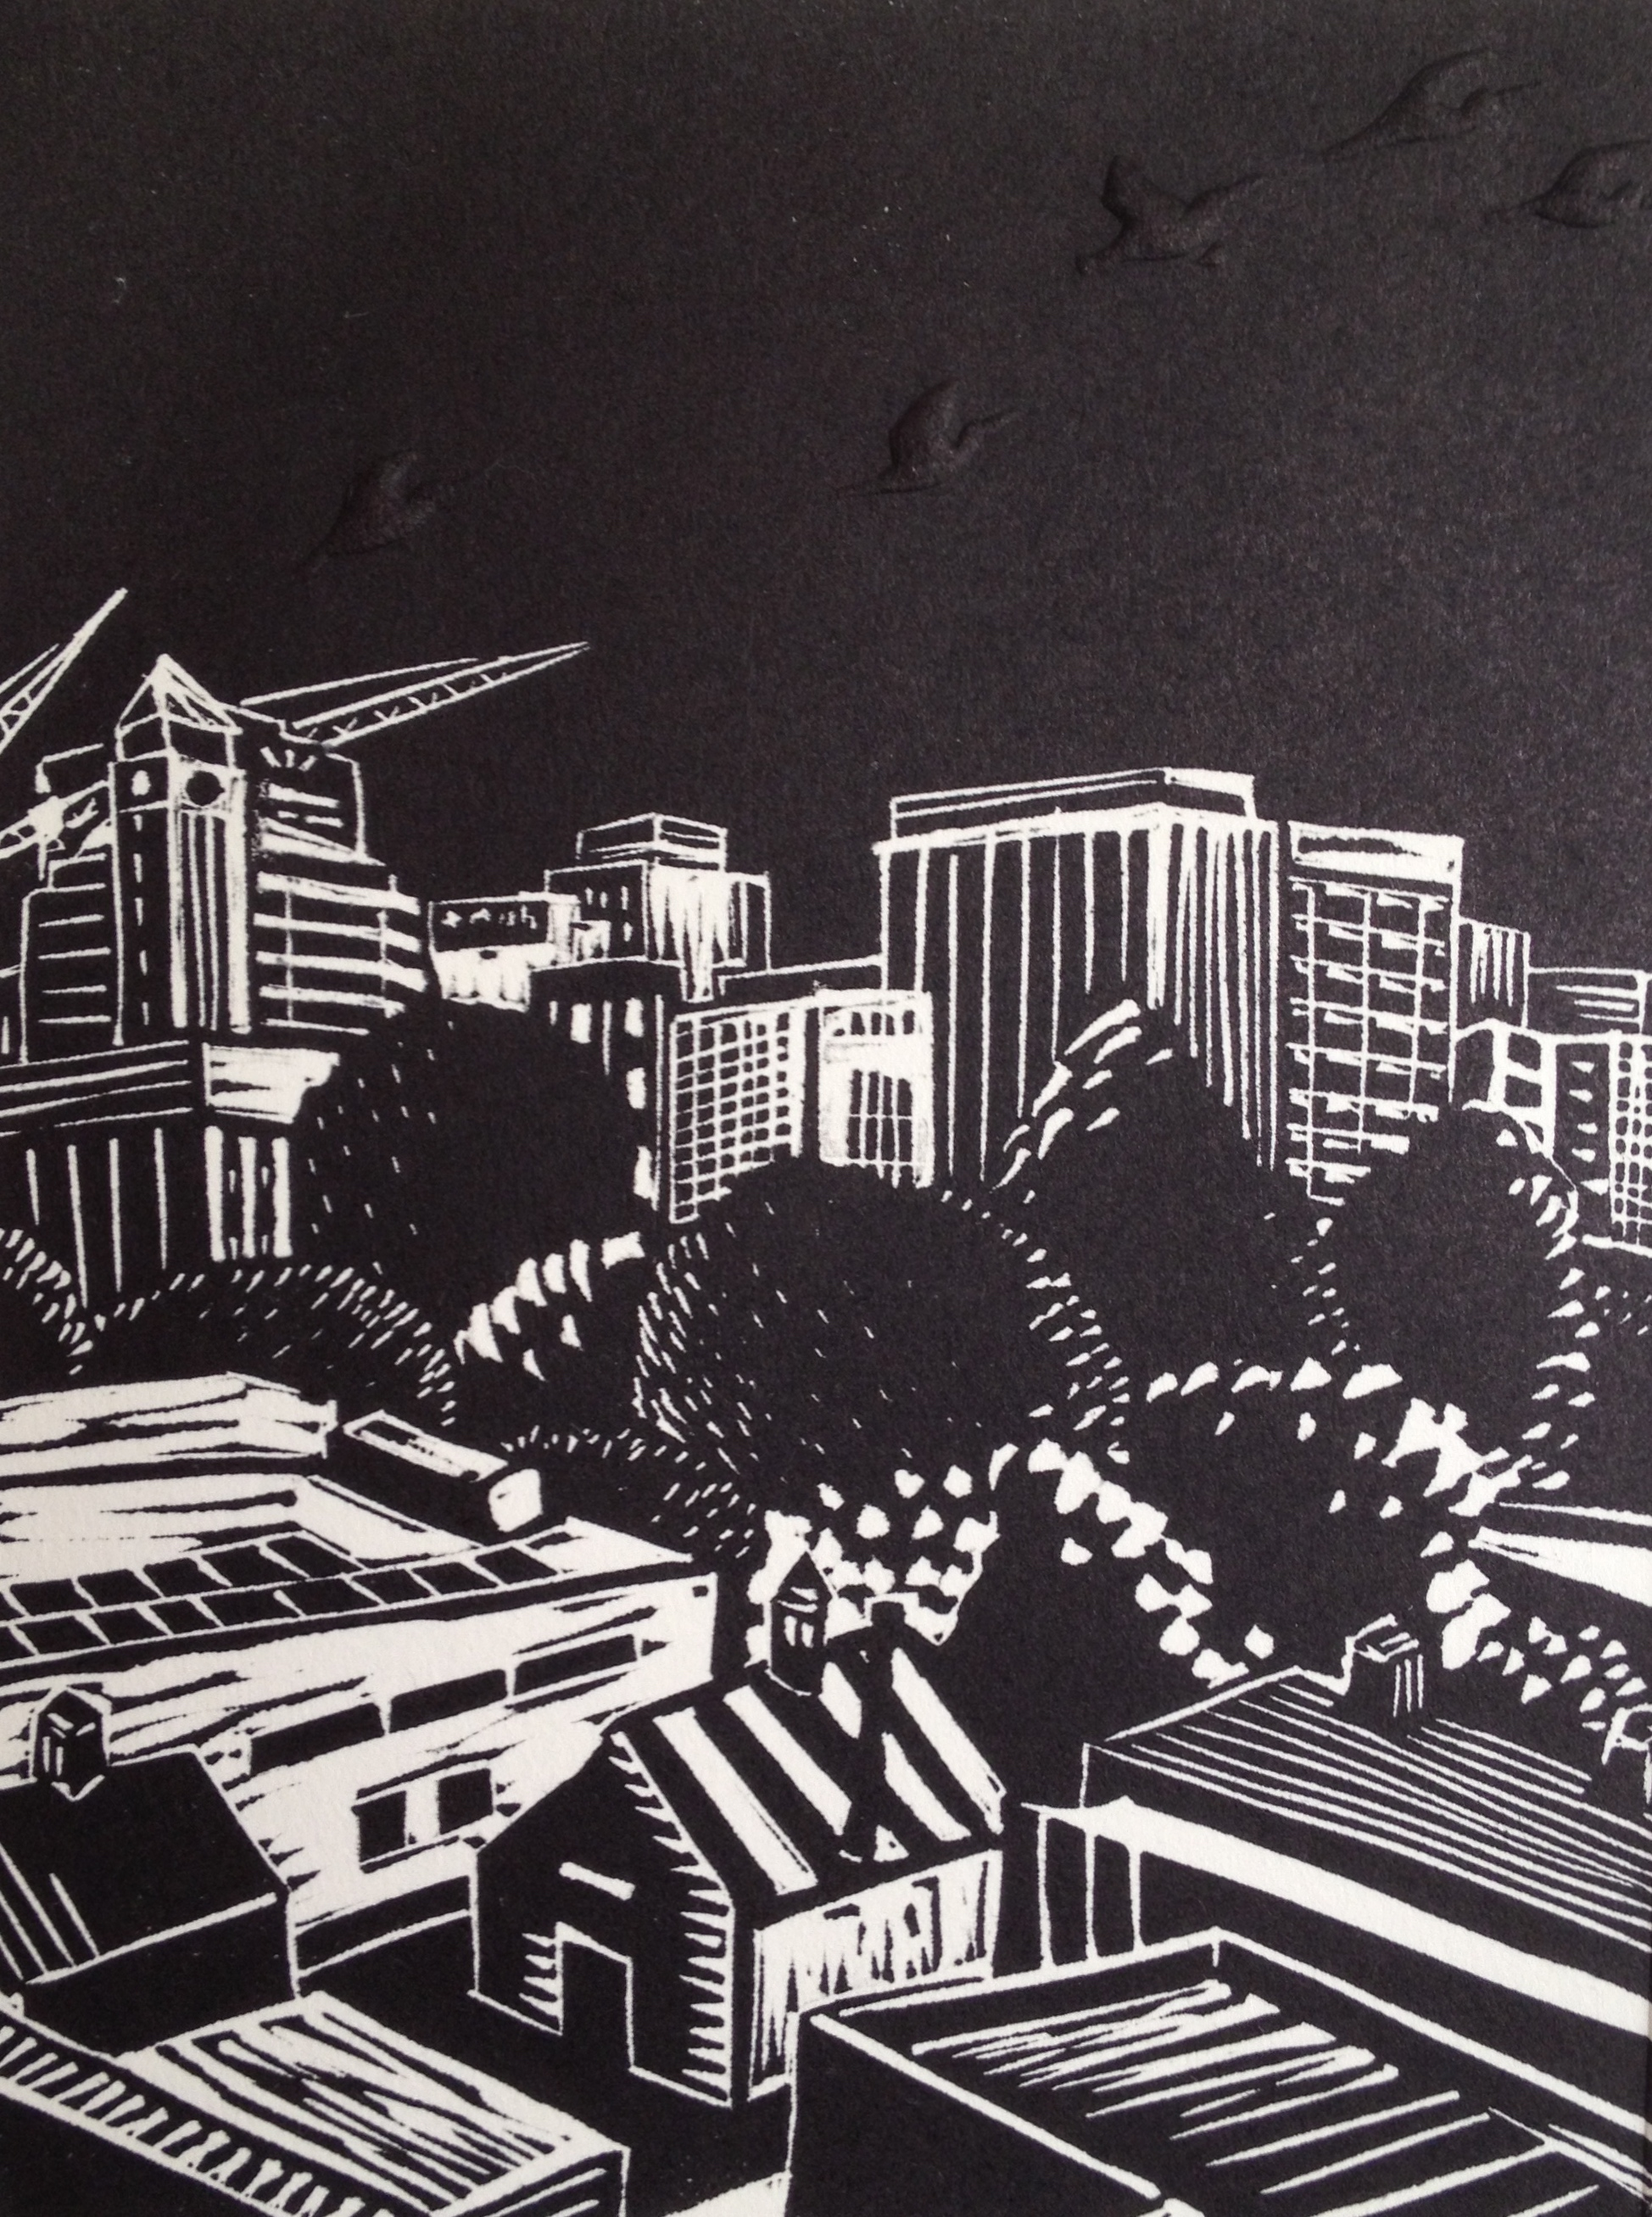 """Birds Over Adelaide: View from Schulz Building   Linocut with embossing, 2013  Edition of 3  Image size: 19 cm x 14.5 cm  Framed size:  $260 (only framed copy available)                      Normal   0           false   false   false     EN-AU   JA   X-NONE                                                                                                                                                                                                                                                                                                                                                                            /* Style Definitions */ table.MsoNormalTable {mso-style-name:""""Table Normal""""; mso-tstyle-rowband-size:0; mso-tstyle-colband-size:0; mso-style-noshow:yes; mso-style-priority:99; mso-style-parent:""""""""; mso-padding-alt:0cm 5.4pt 0cm 5.4pt; mso-para-margin:0cm; mso-para-margin-bottom:.0001pt; mso-pagination:widow-orphan; font-size:10.0pt; font-family:""""Times New Roman"""";}          Birds over Adelaide: View from Schulz Building    is inspired by the constantly changing skyline of Adelaide and the numerous cranes and construction sites currently seen in the city. Birds flying are symbols of the enlivening of Adelaide and our growth towards the sky."""